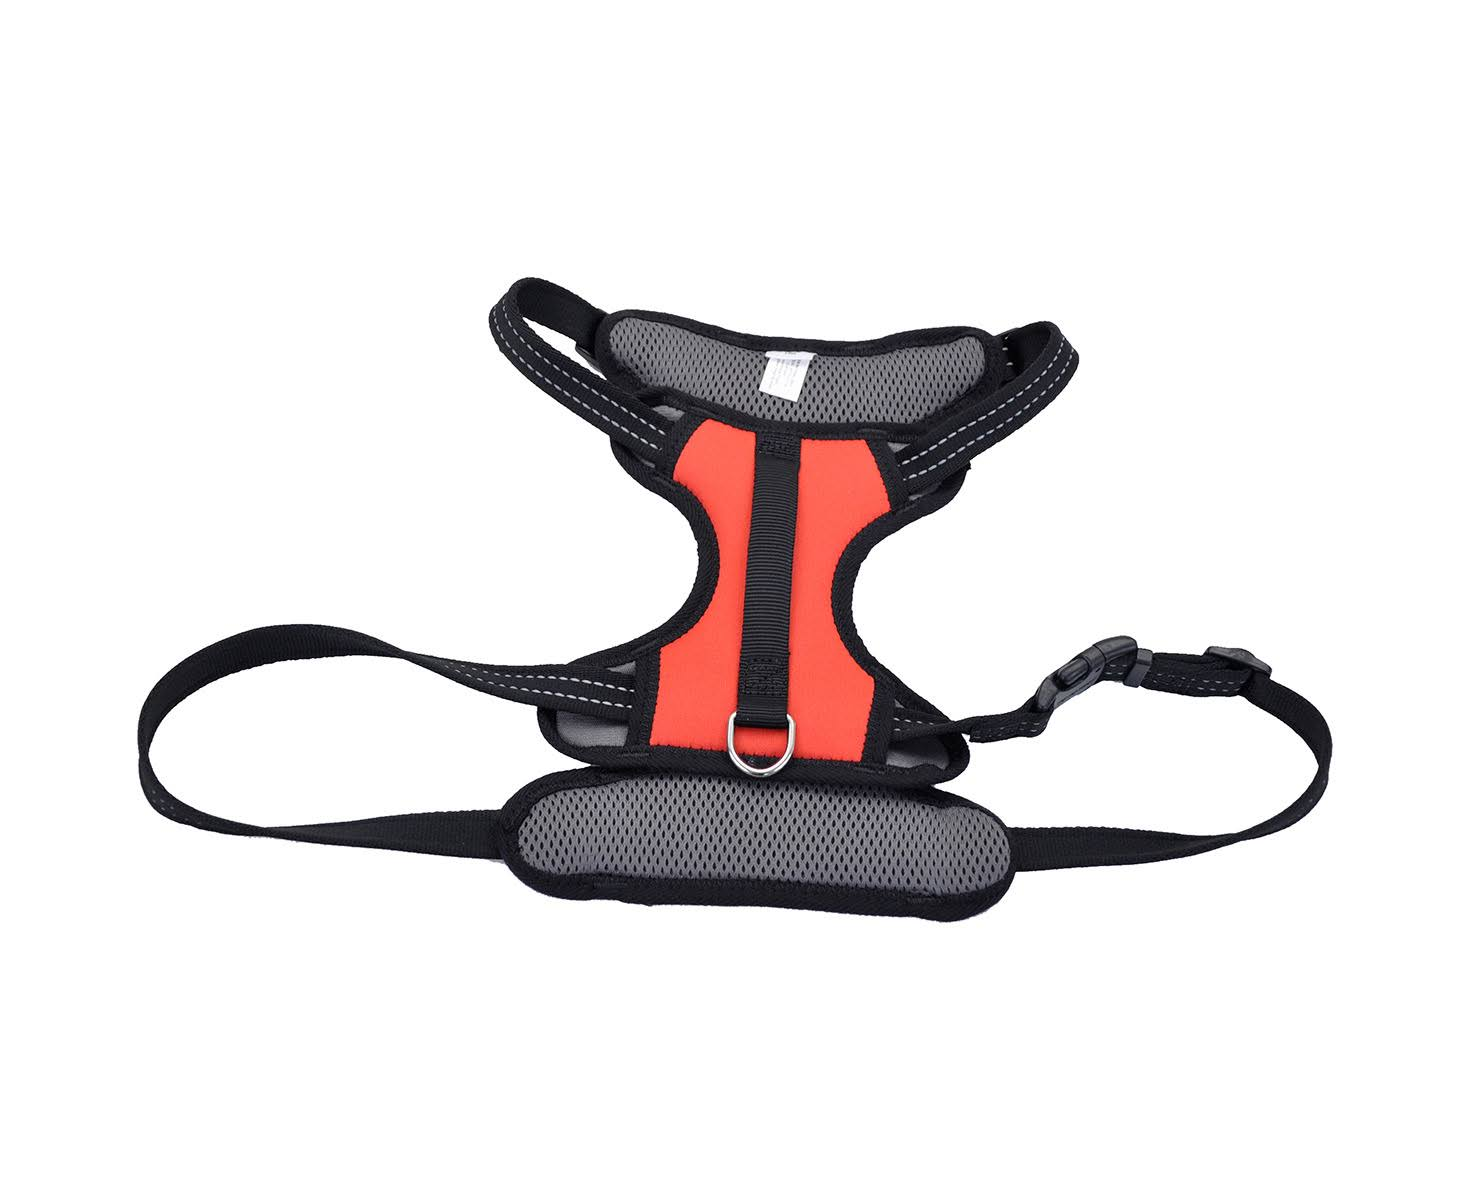 Coastal Reflective Control Handle Harness - Red, Large